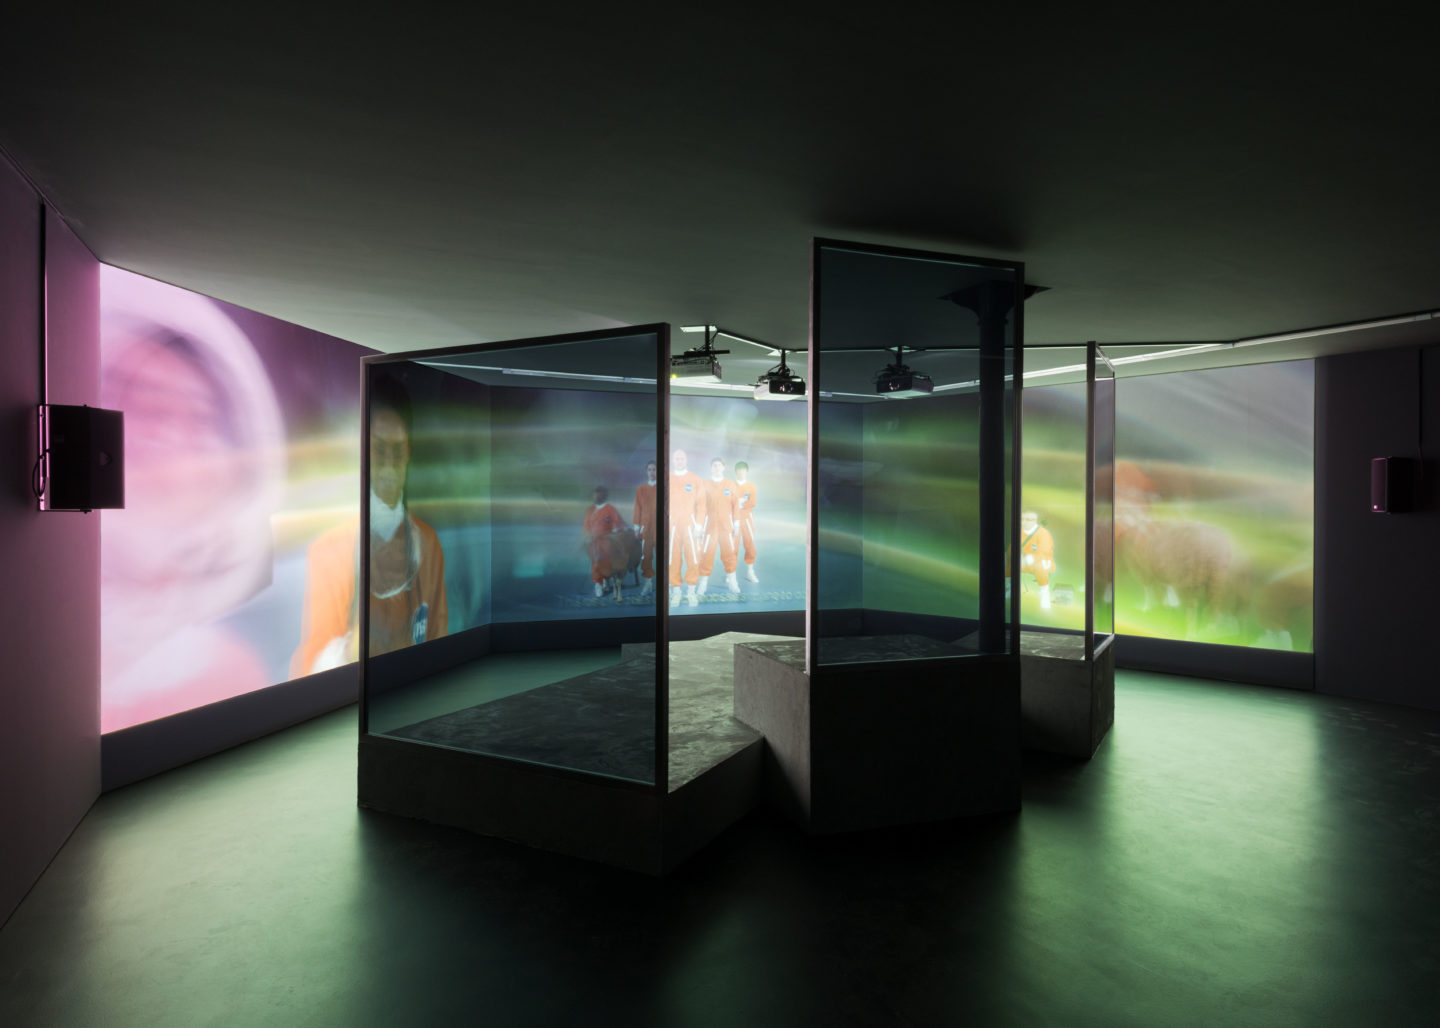 """Exhibition View Hito Steyerl """"ExtraSpaceCraft"""" at Kunstmuseum Basel Gegenwart 2018 / Photo: Marc Asekhame / Courtesy: Andrew Kreps Gallery, New York"""